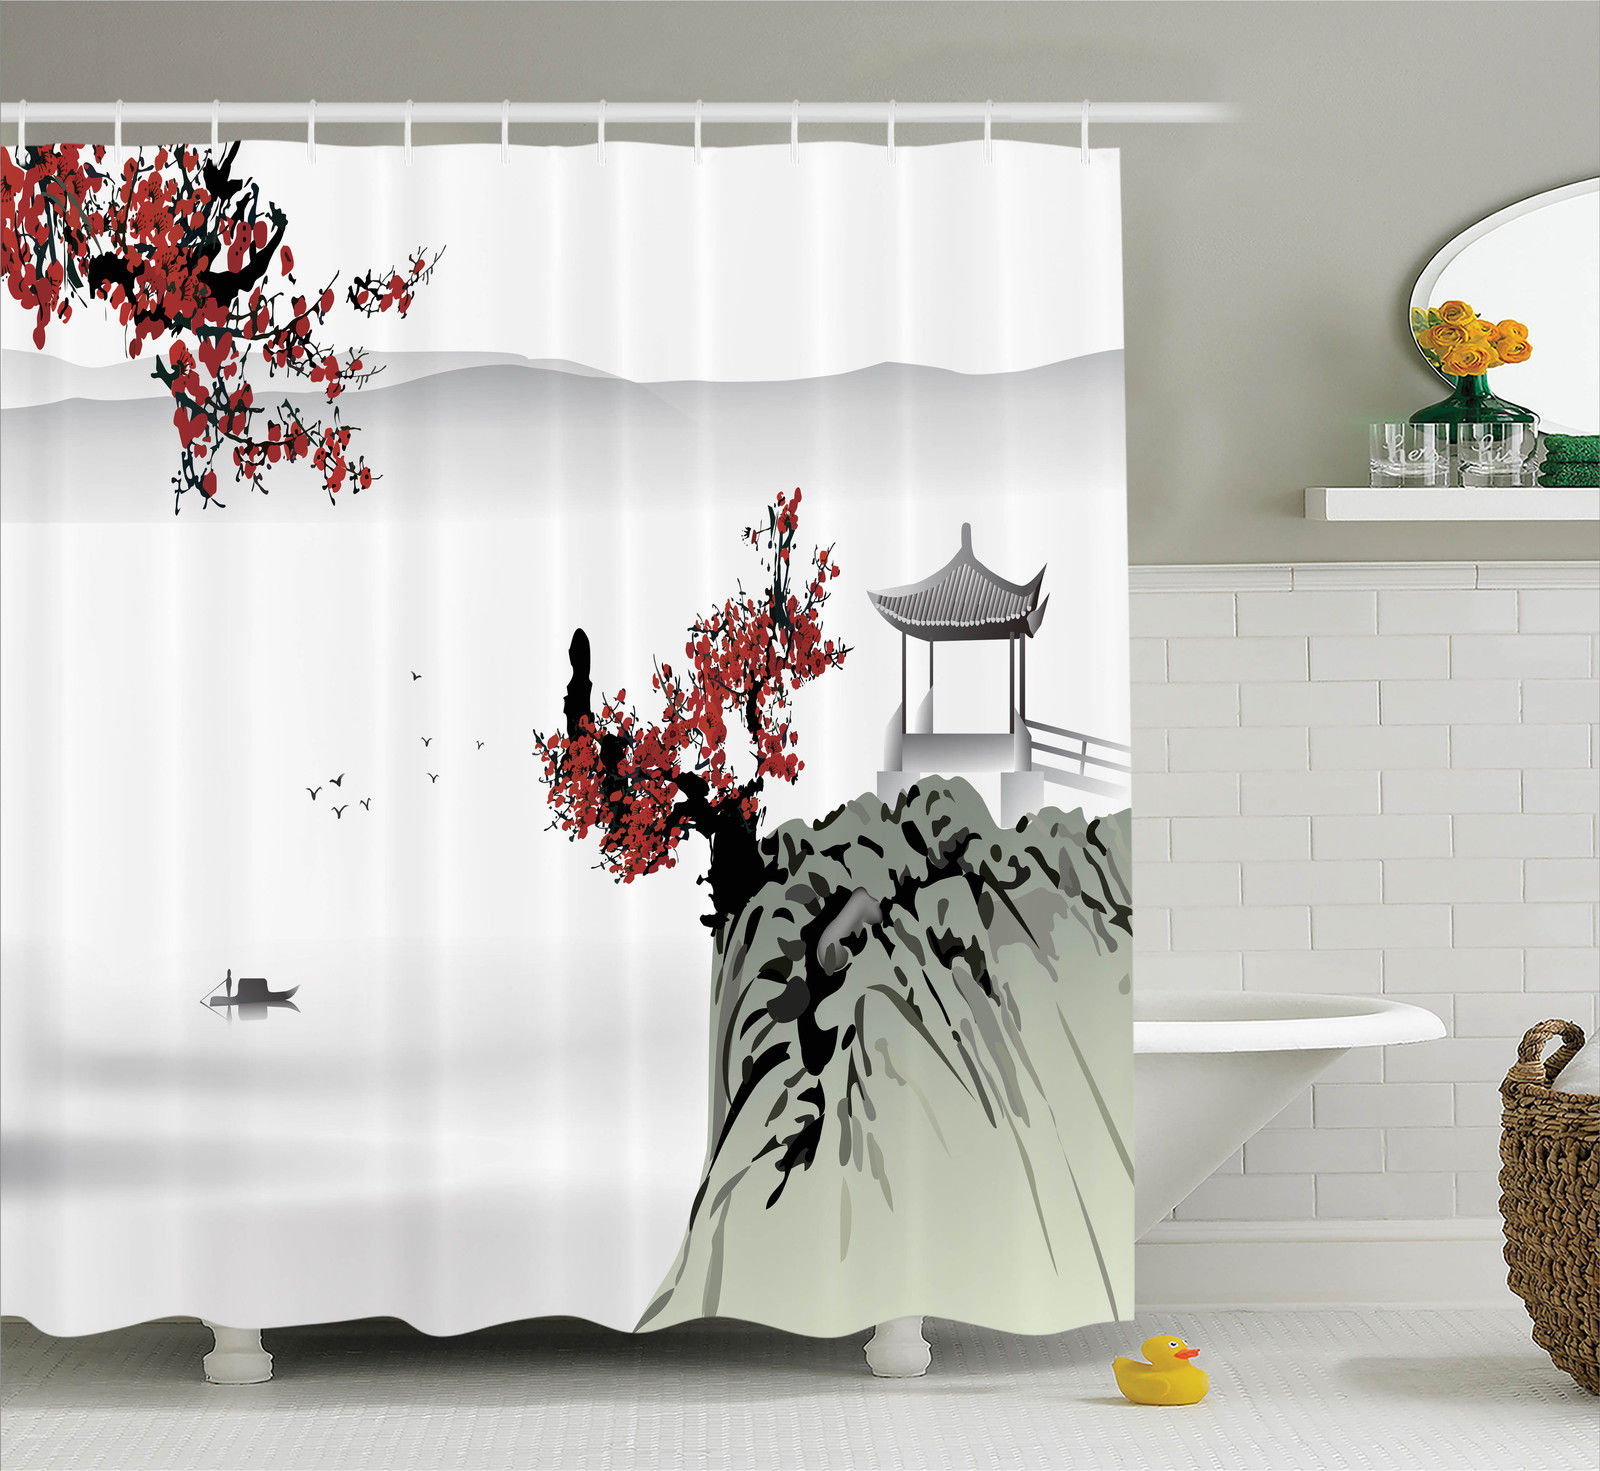 Asian Decor Shower Curtain Set, Asian River Scenery With Cherry Blossoms  And Boat Cultural Hints